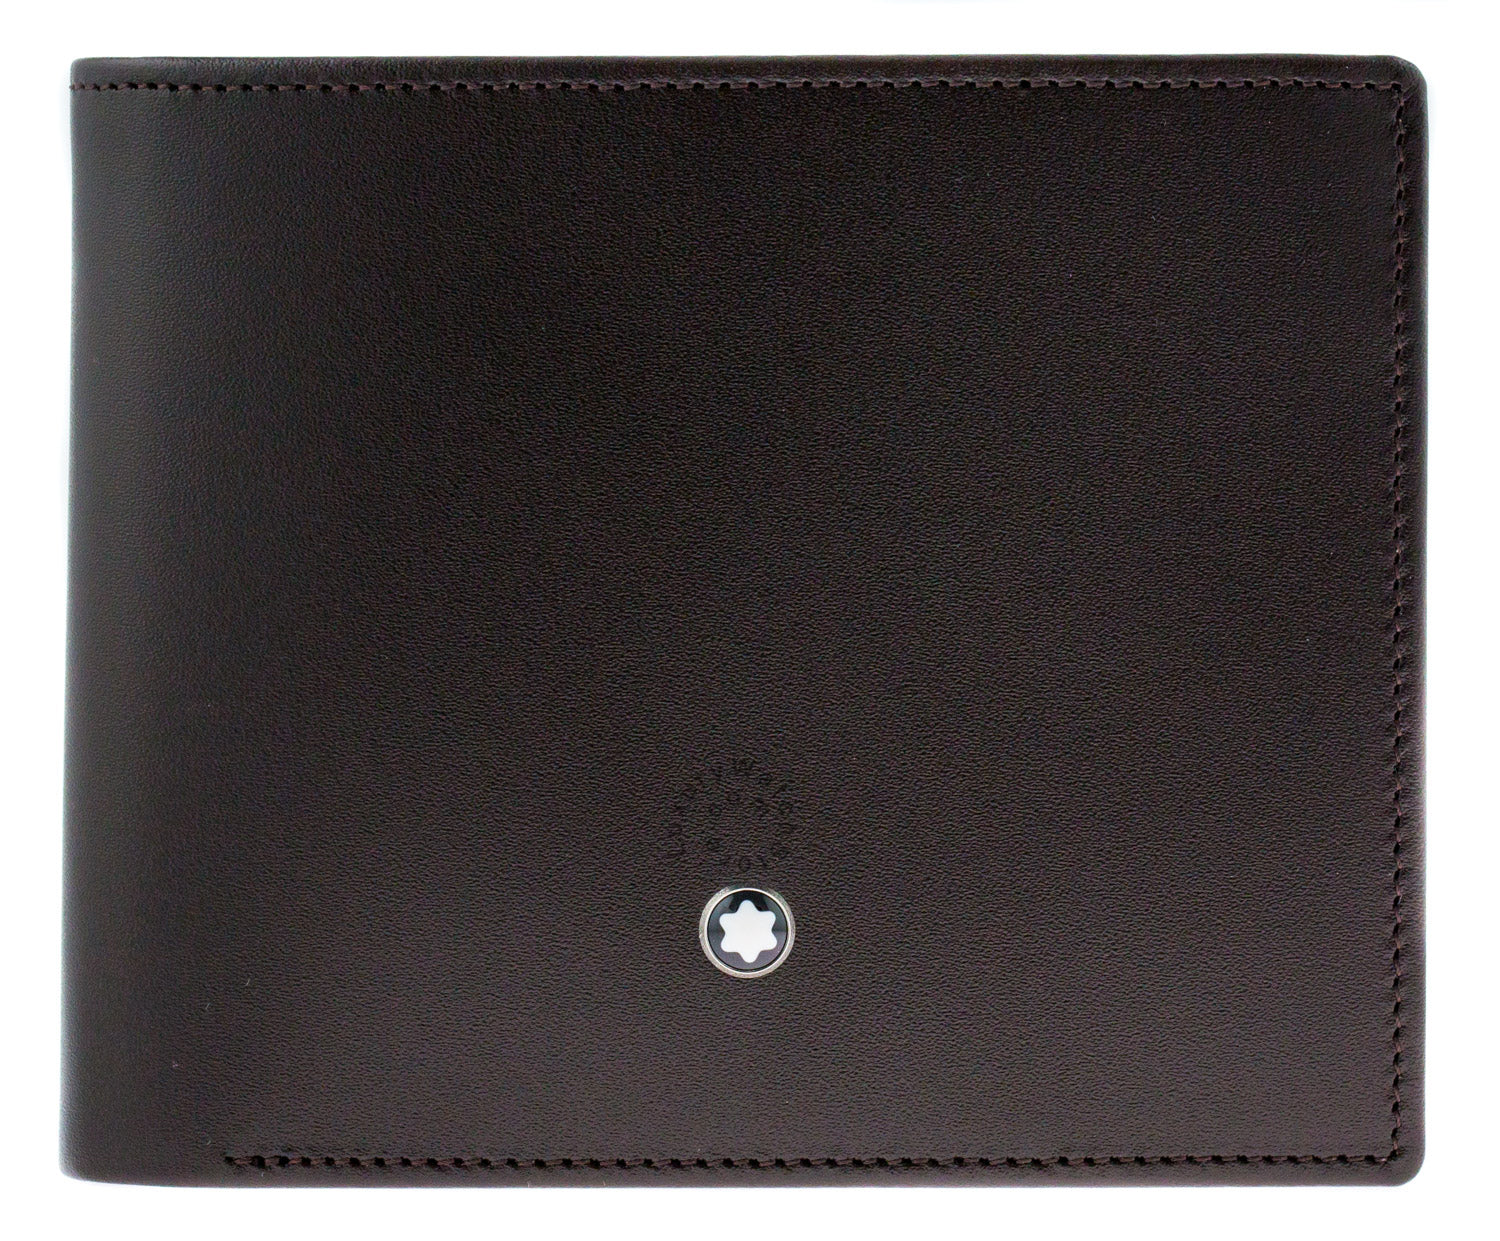 Montblanc Meisterstück 6cc 2 View Pockets Brown Leather Wallet 114549